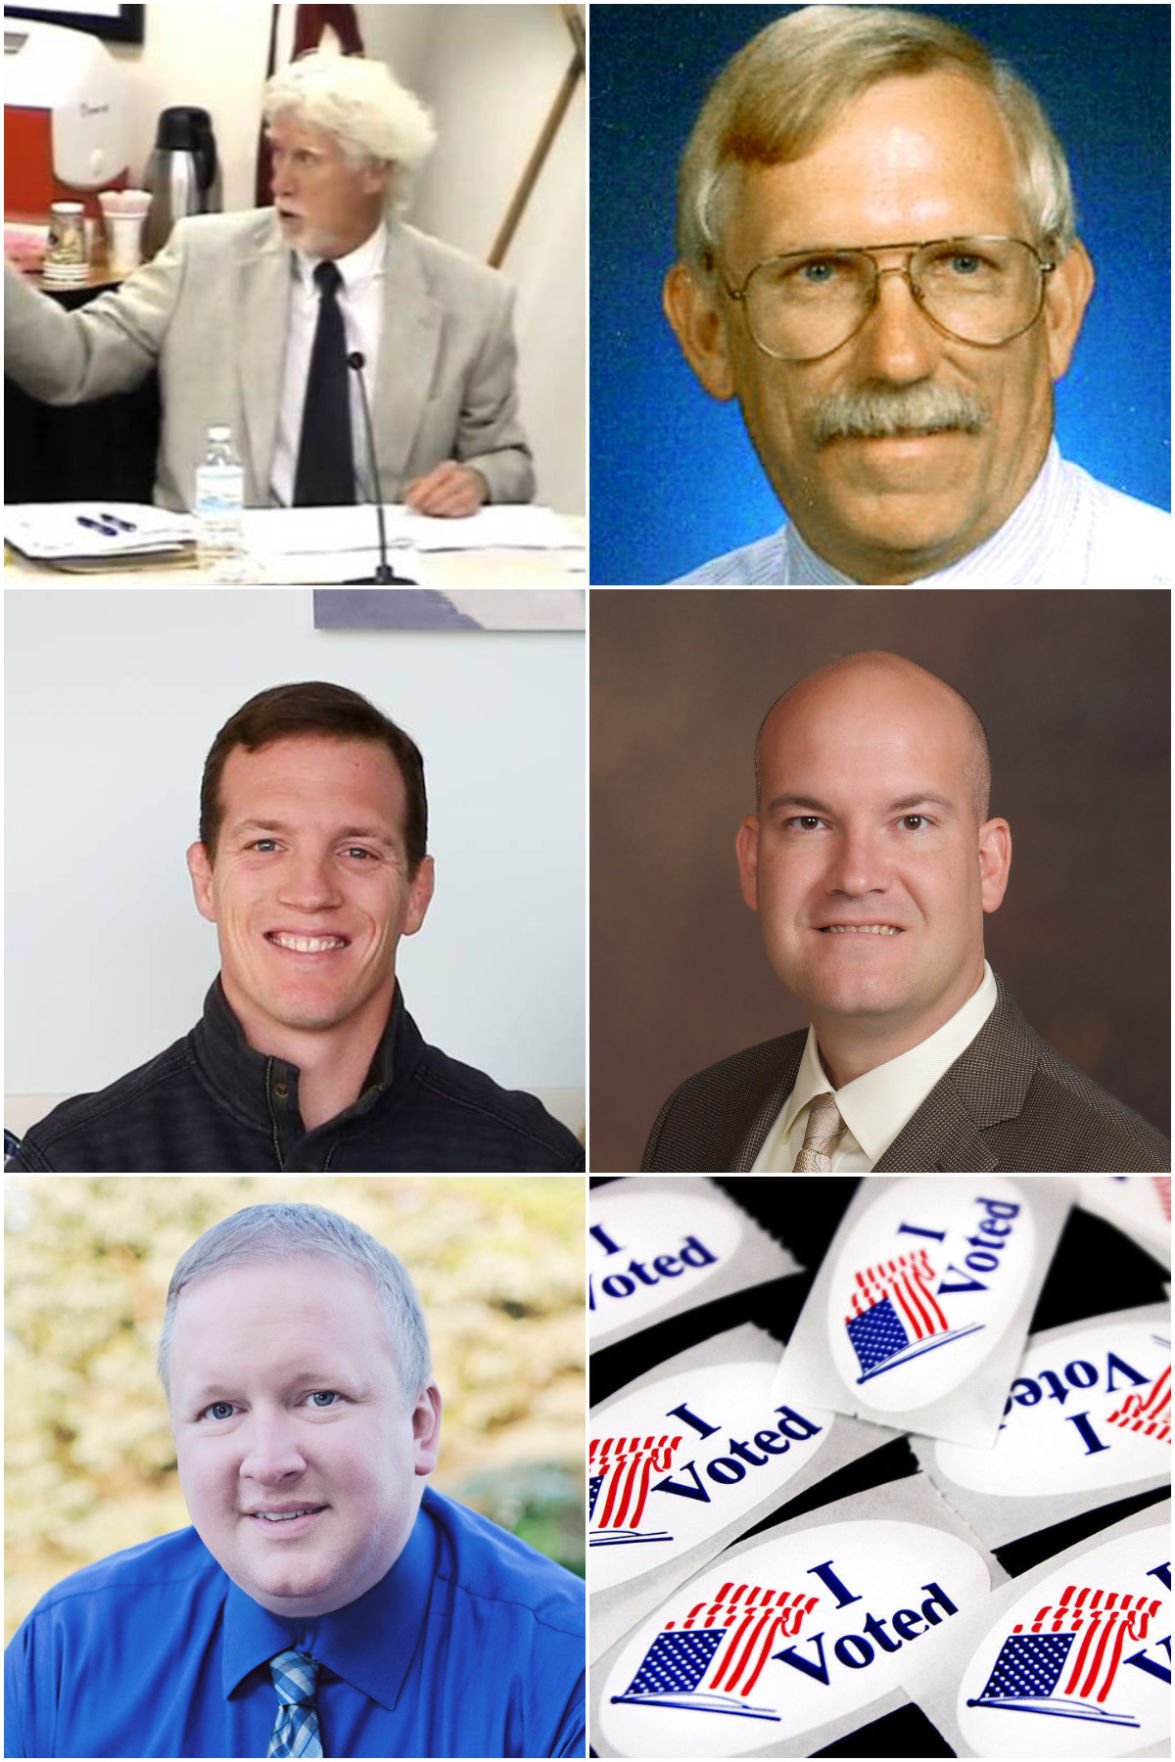 Davenport 6th Ward candidates